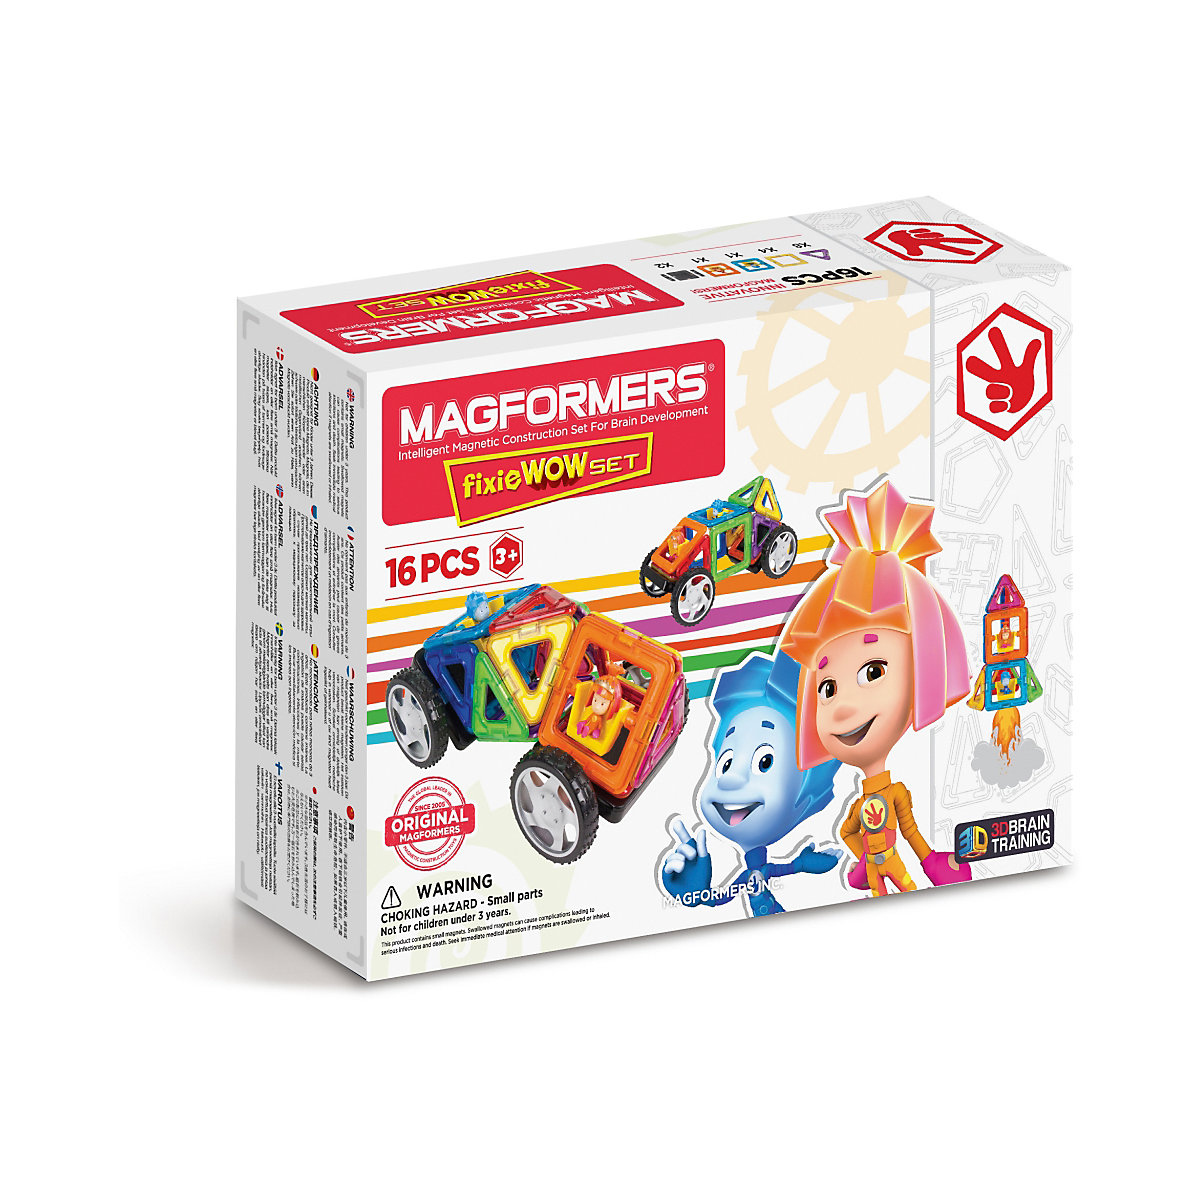 Blocks MAGFORMERS 6992490 Constructor Minecraft Toys Magnetic Designer Ninjago Figures magnetic sheet building blocks variable lift magnetic sheet puzzle children toys